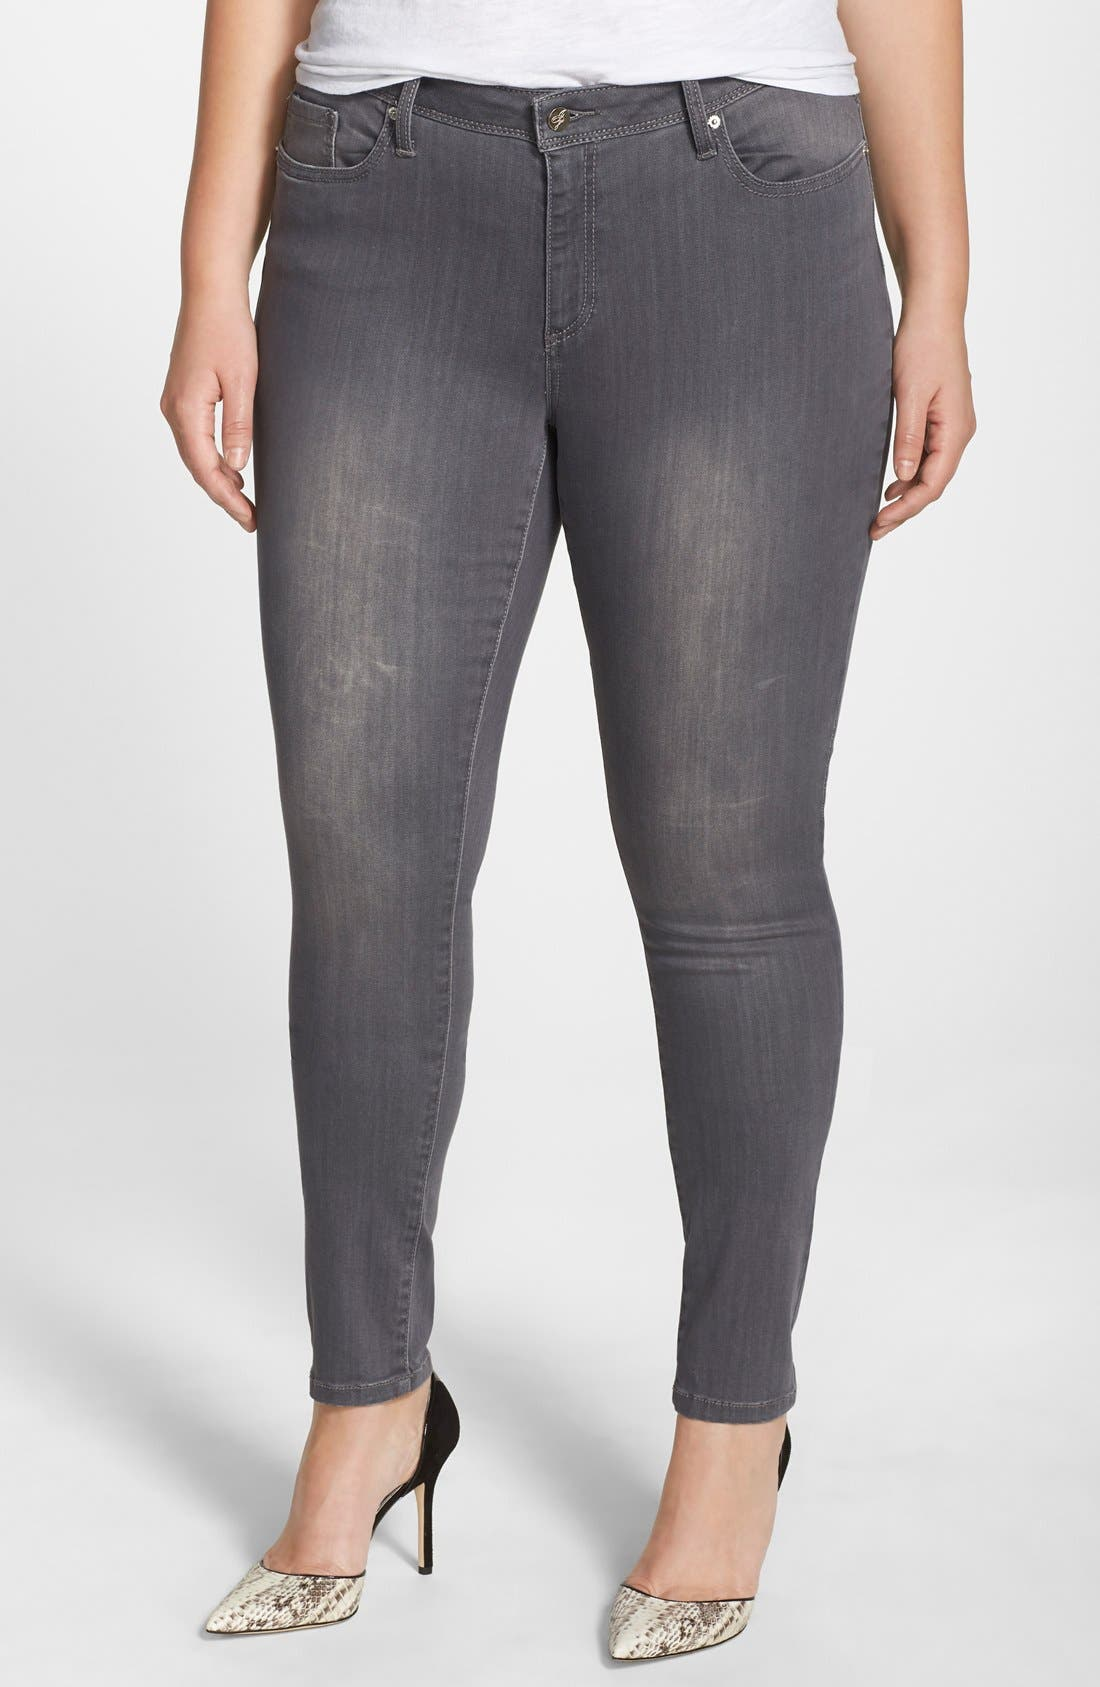 Poetic Justice Maya Ripped Stretch Skinny Jeans (Plus Size)